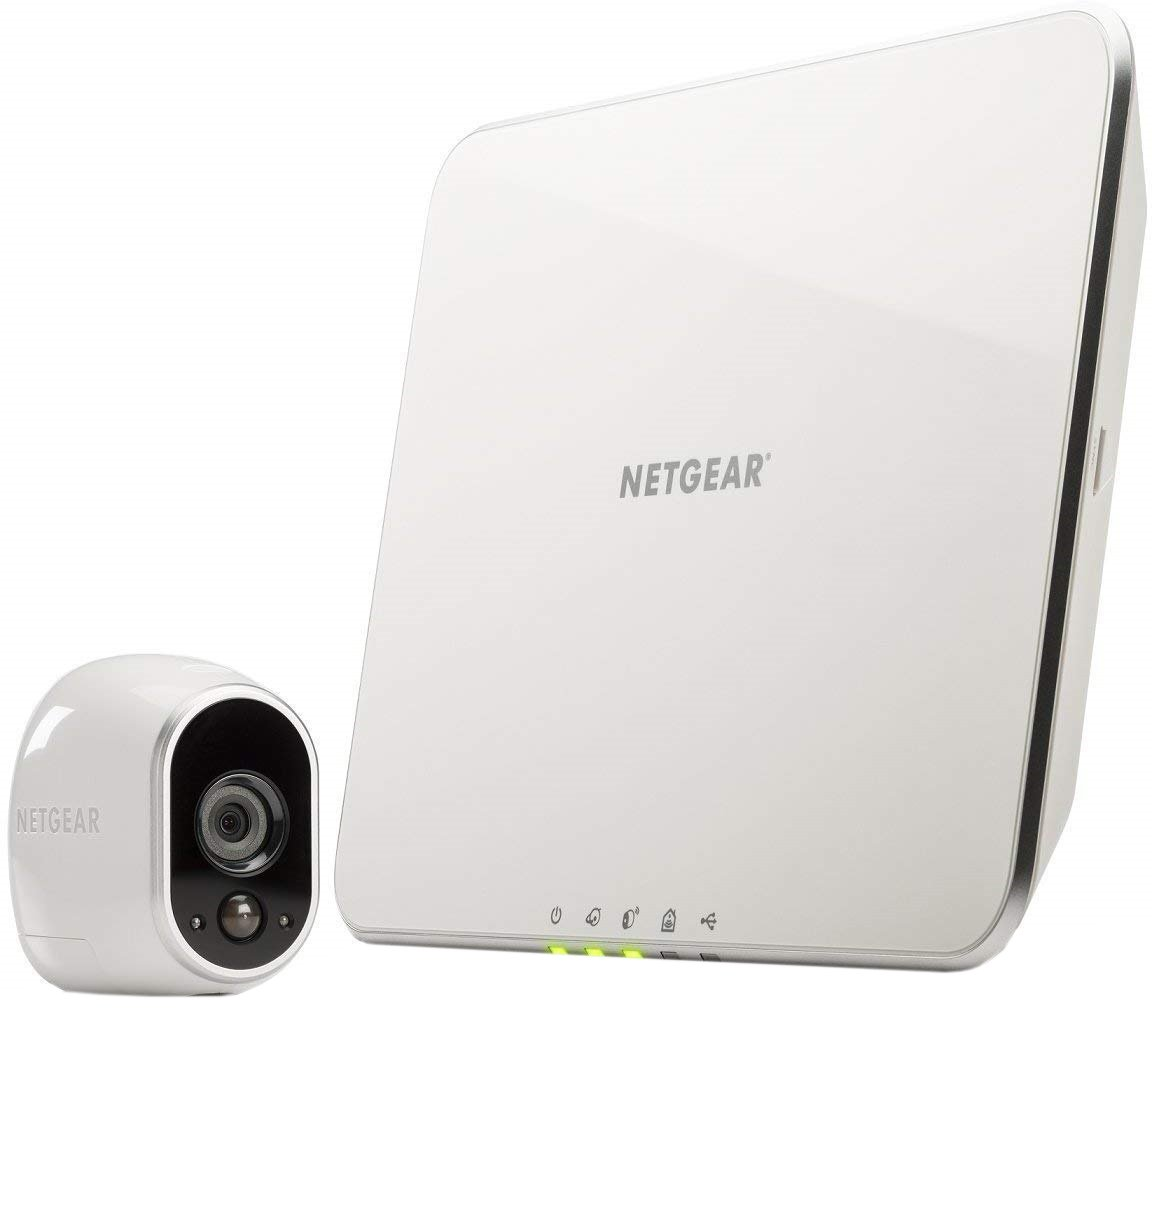 Image of Netgear VMS3130 Night and Day Home Security Camera